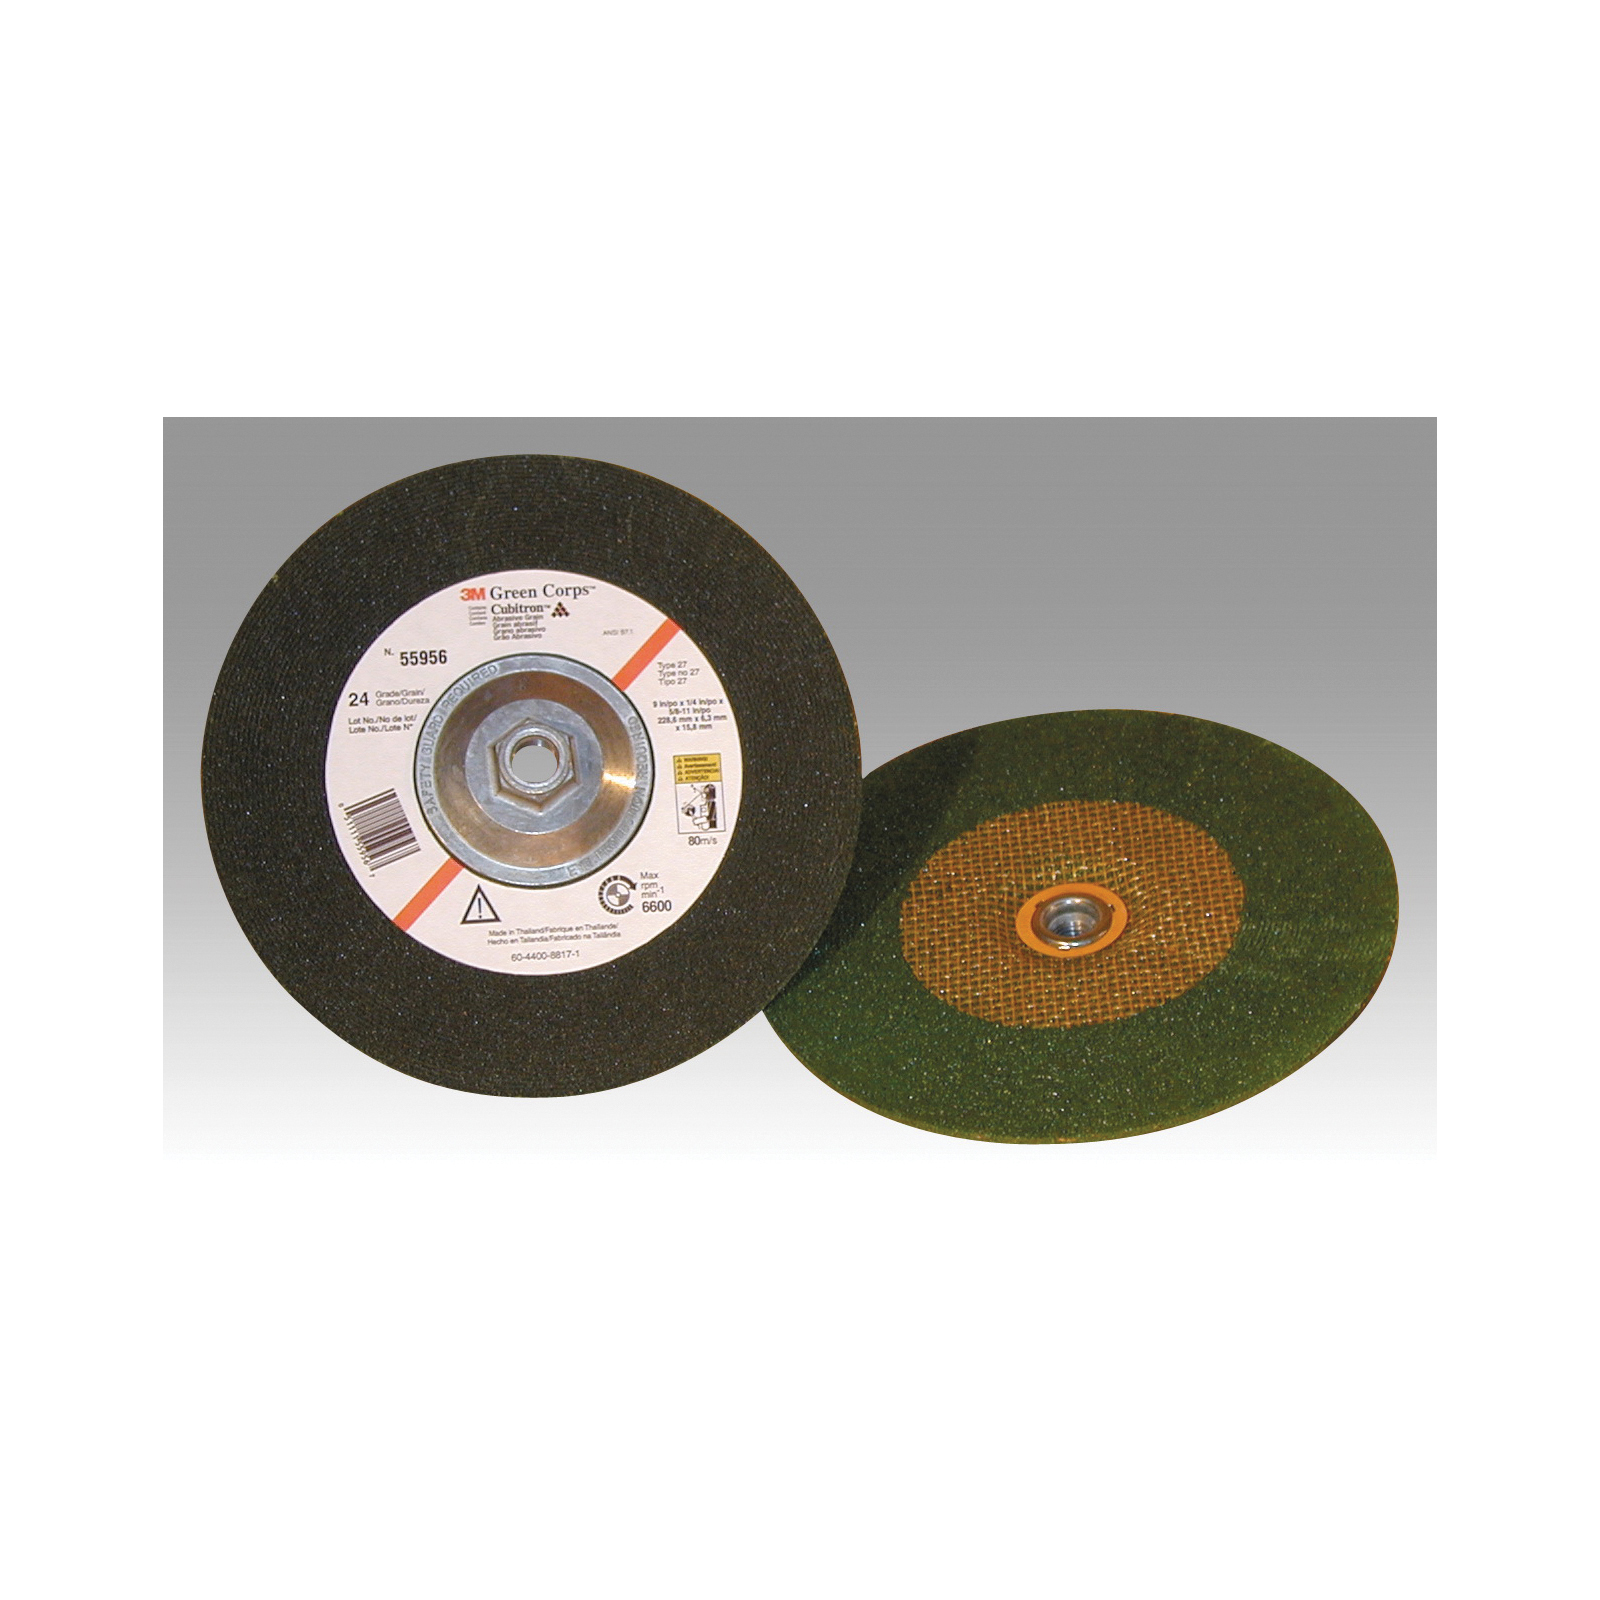 Green Corps™ 051131-01989 Straight Cut-Off Wheel, 3 in Dia x 1/32 in THK, 3/8 in Center Hole, Ceramic Abrasive